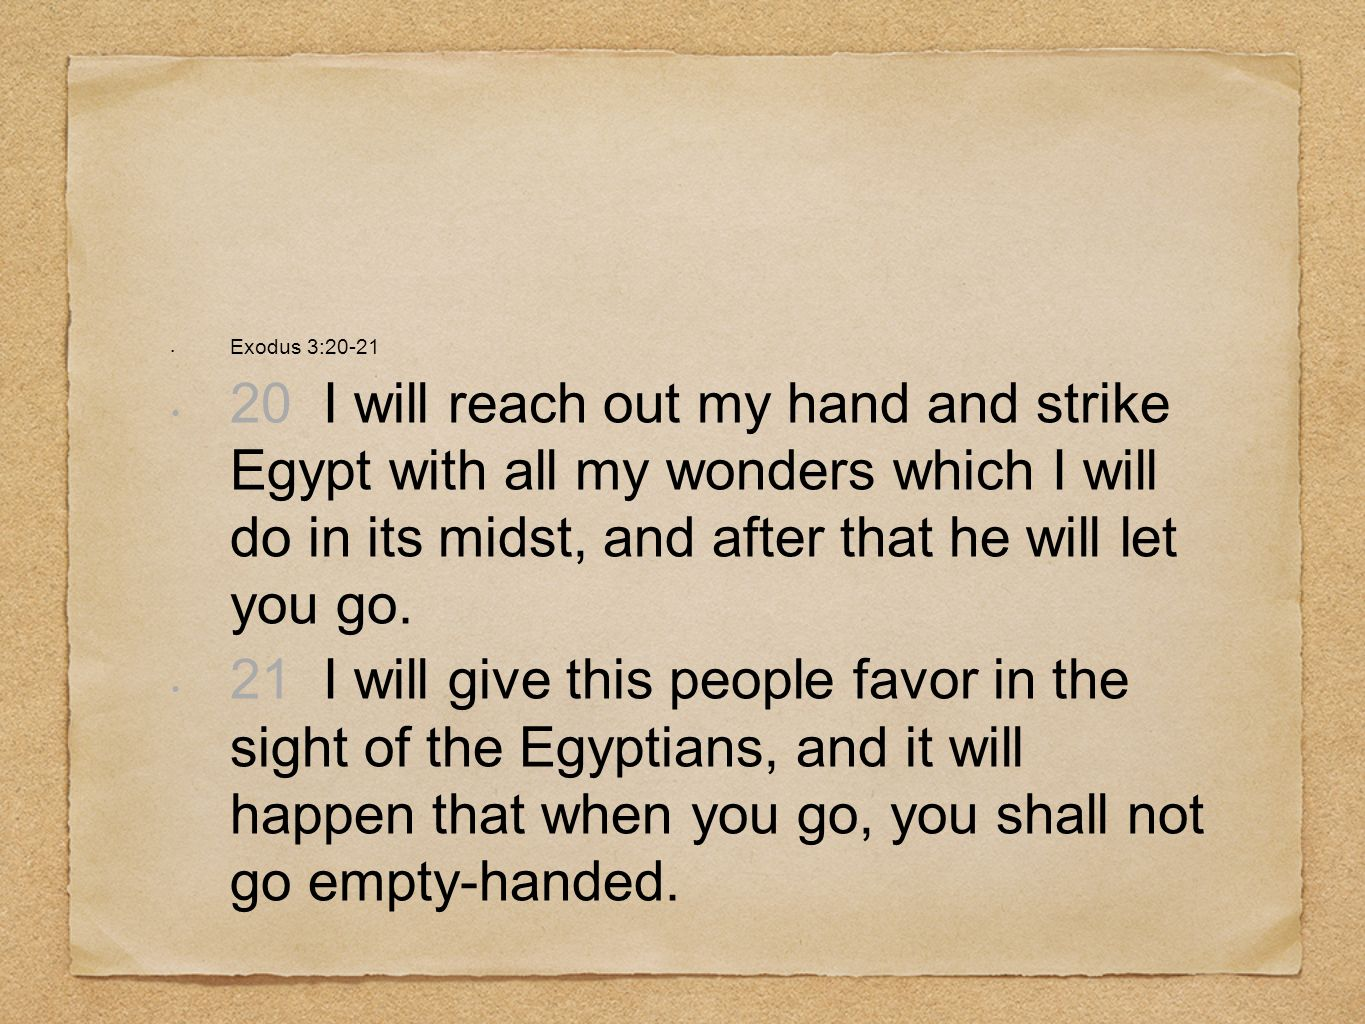 Exodus 3:20-21 20 I will reach out my hand and strike Egypt with all my wonders which I will do in its midst, and after that he will let you go.